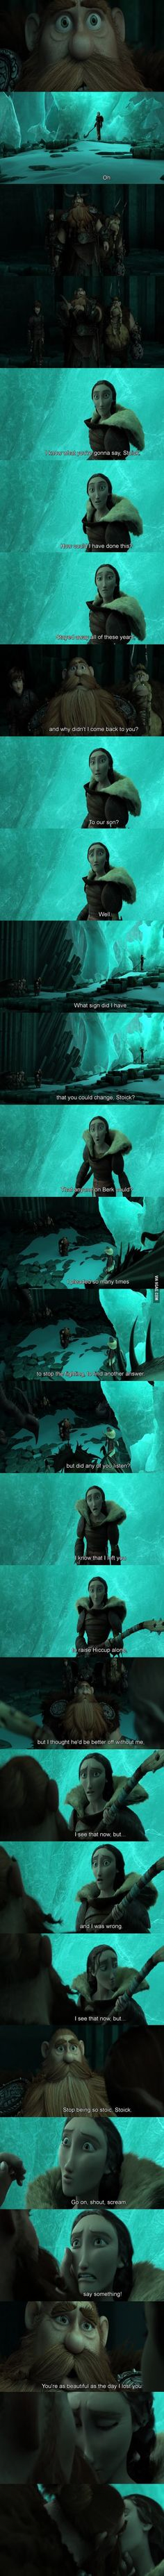 I'm 20 and I teared up in this scene... Best scene in the whole movie, made HTTYD a romance as well.